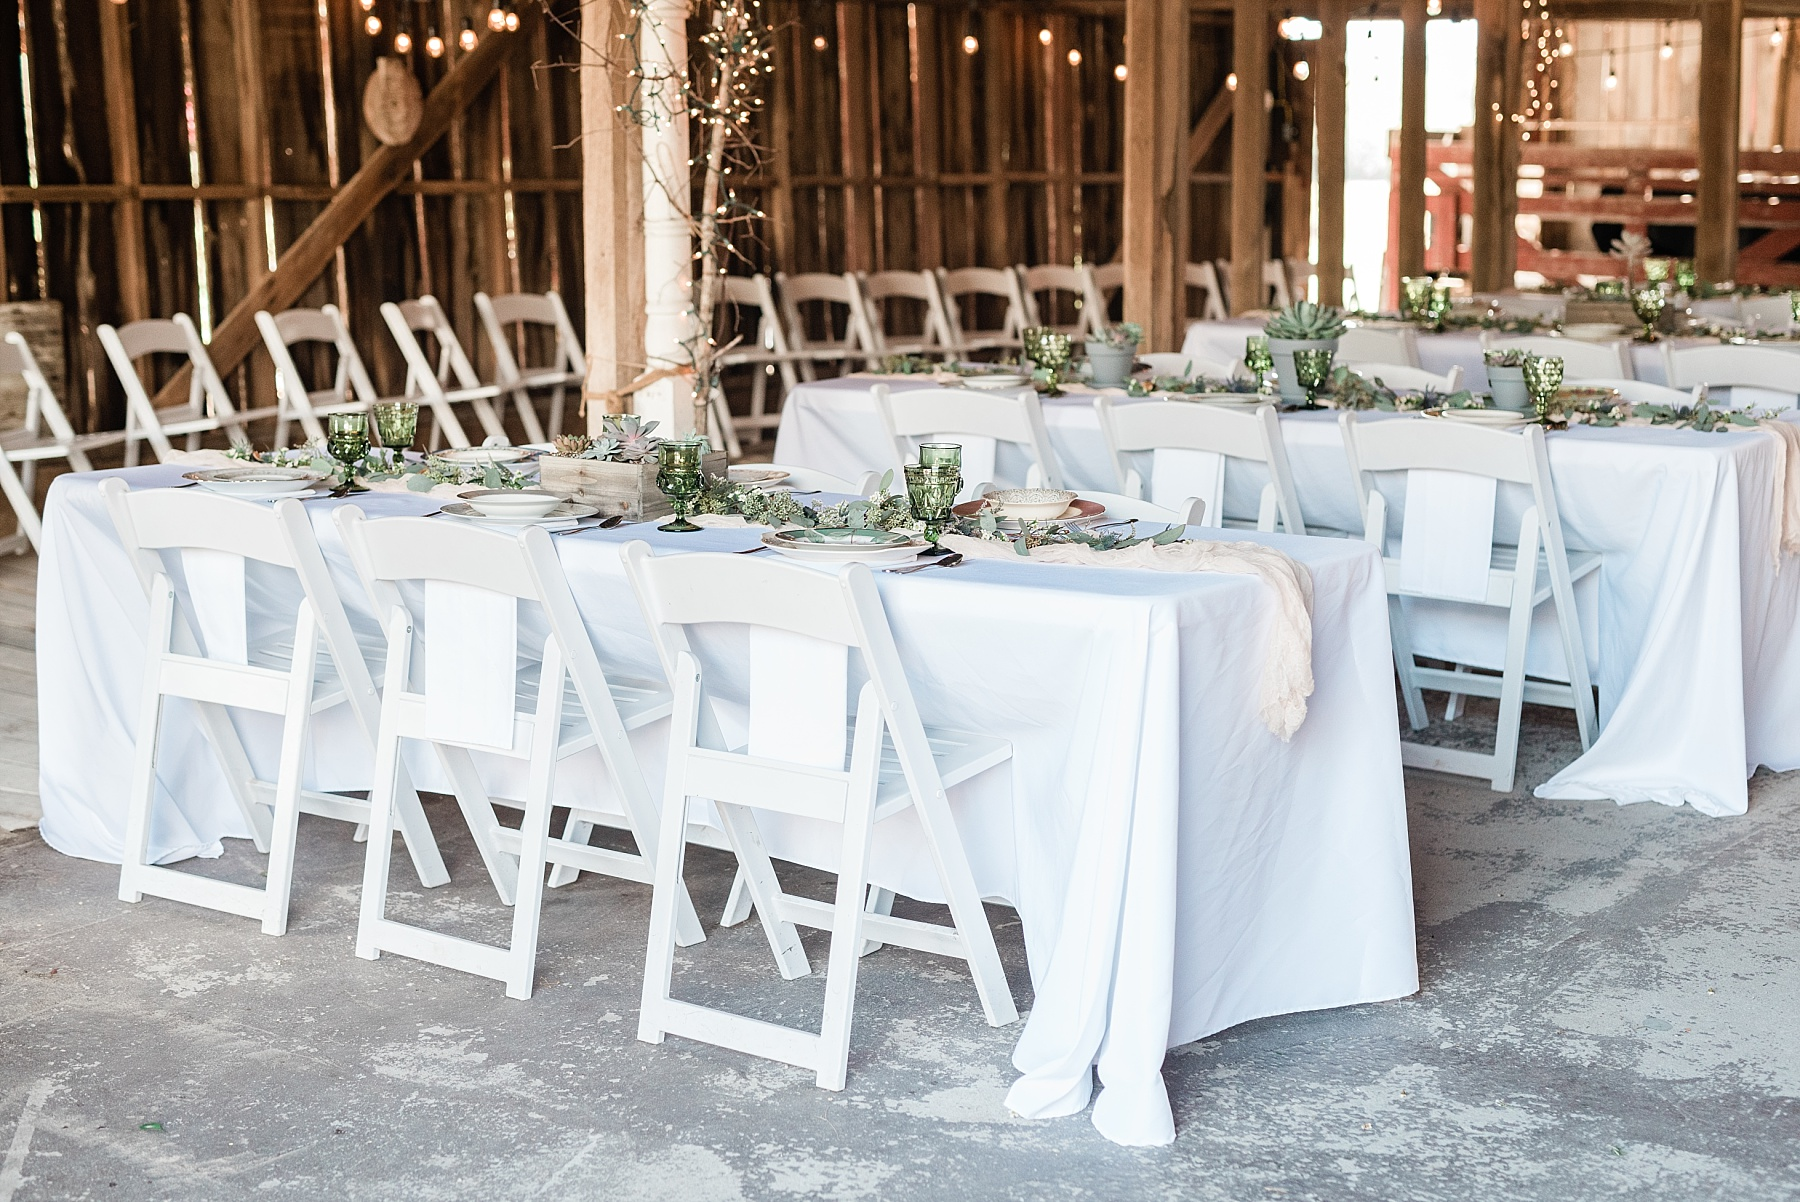 Fine Art Sunset Themed Wedding in Autumn at Dodson Orchards by Kelsi Kliethermes Photography_0008.jpg